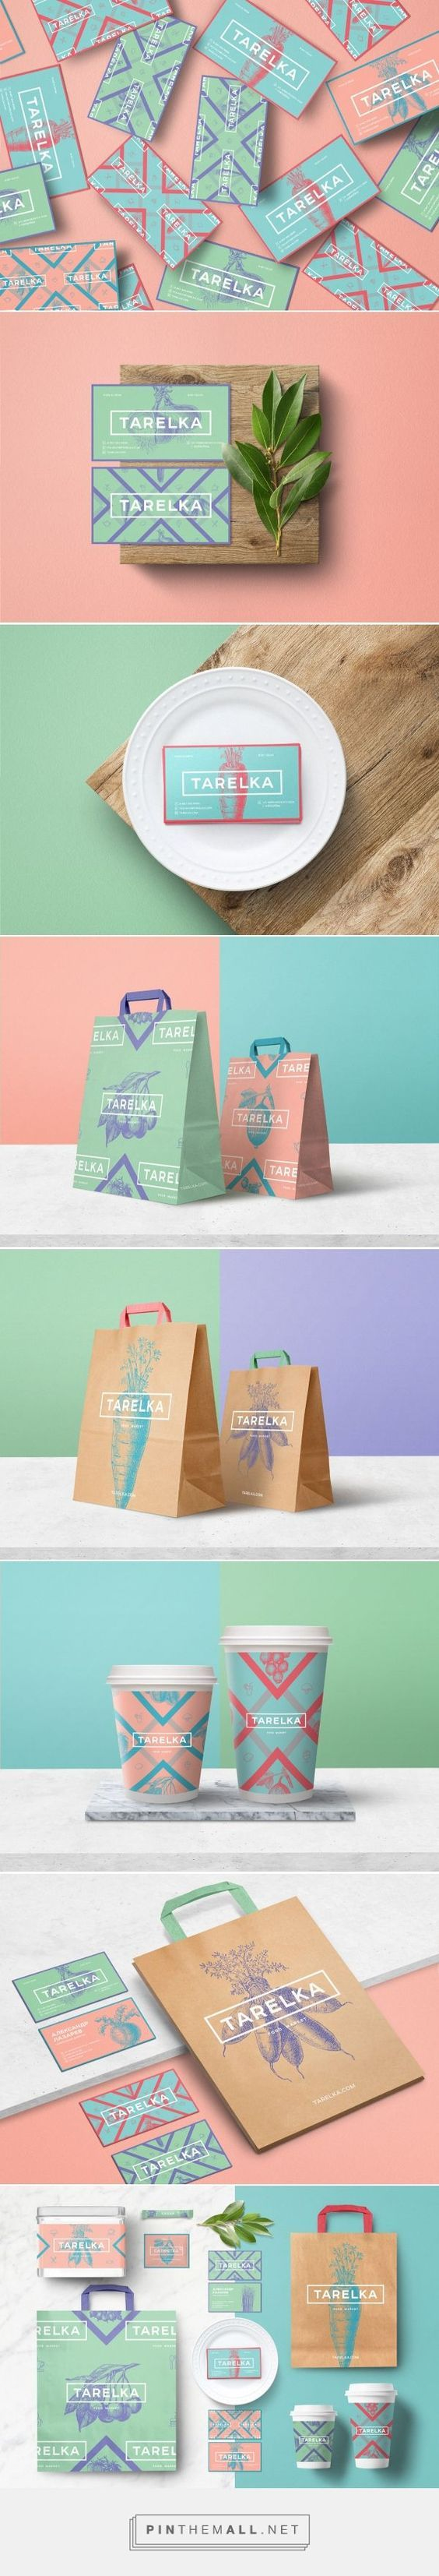 Branding, graphic design and packaging for ARELKA food market on Behance by Bureau Bumblebee Moscow, Russian Federation curated by Packaging Diva PD. Colors, graphics and engravings in our lovely TARELKA located in sunny Izberbash, Republic of Dagestan.: